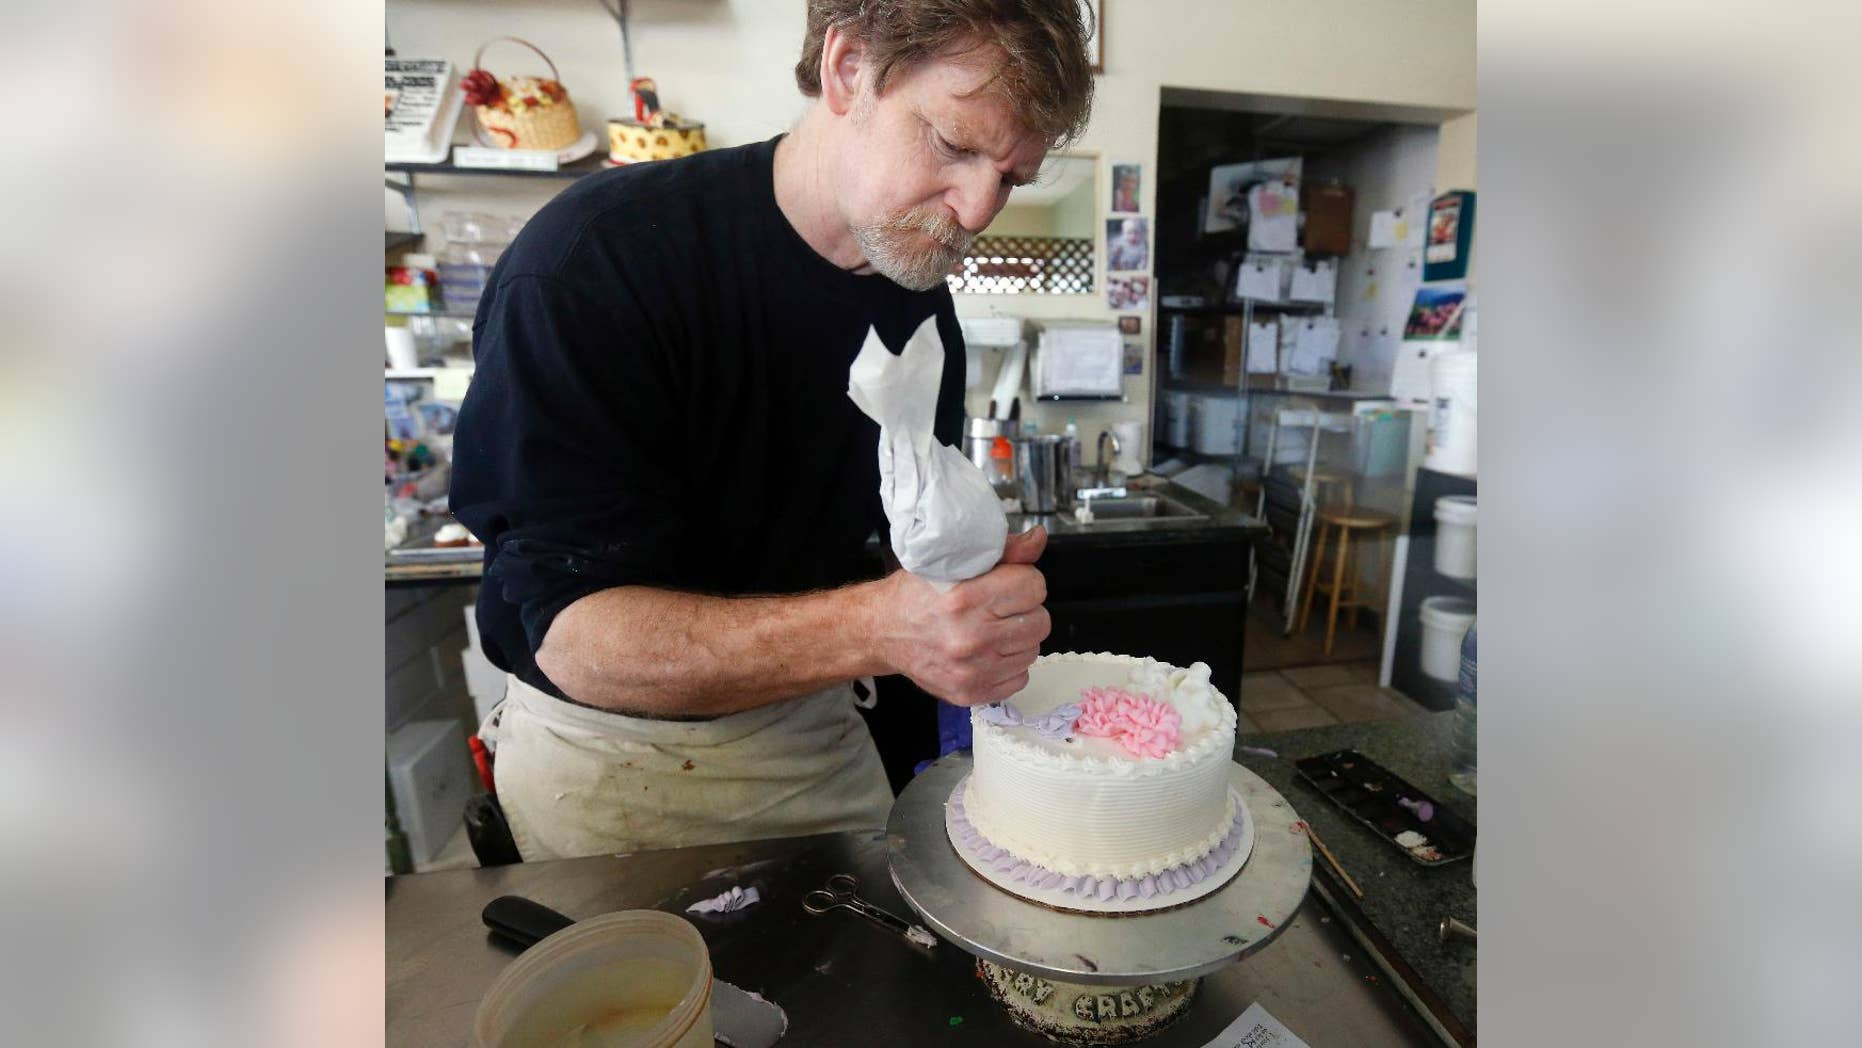 The Good: Colorado's second case against Masterpiece Cakeshop and Jack Phillips crumbles C3b5213d028040c2945132f8f2a80ace-34024